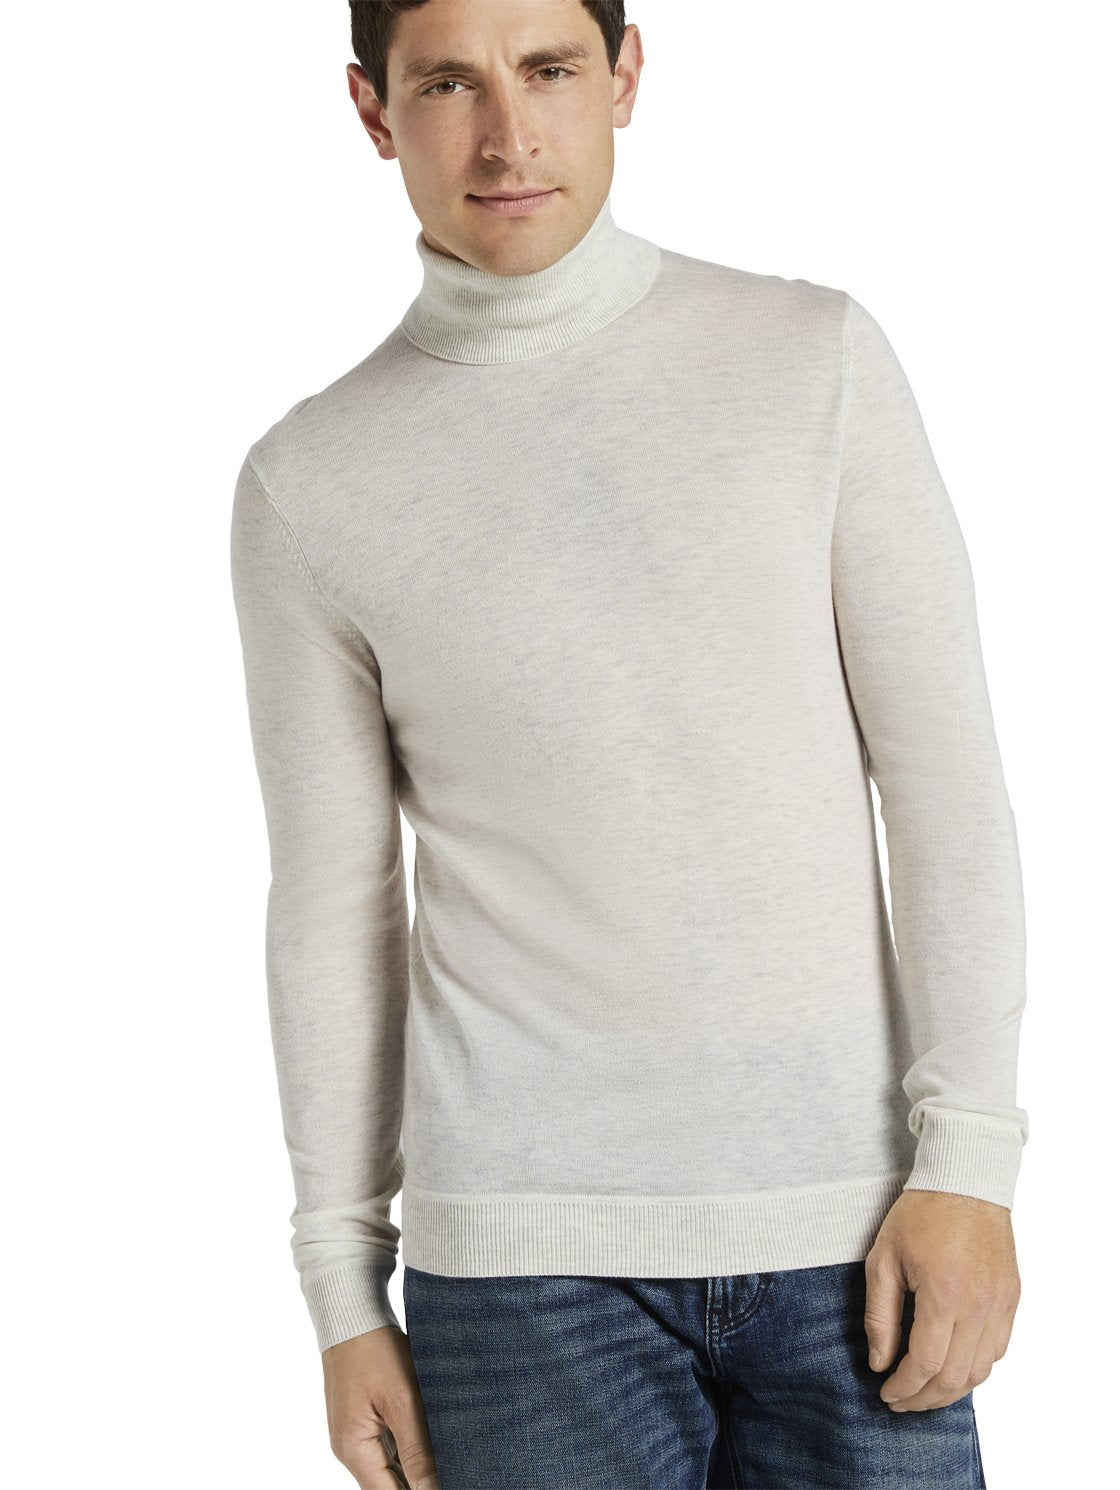 Tom Tailor grey merino wool turtleneck 1021492